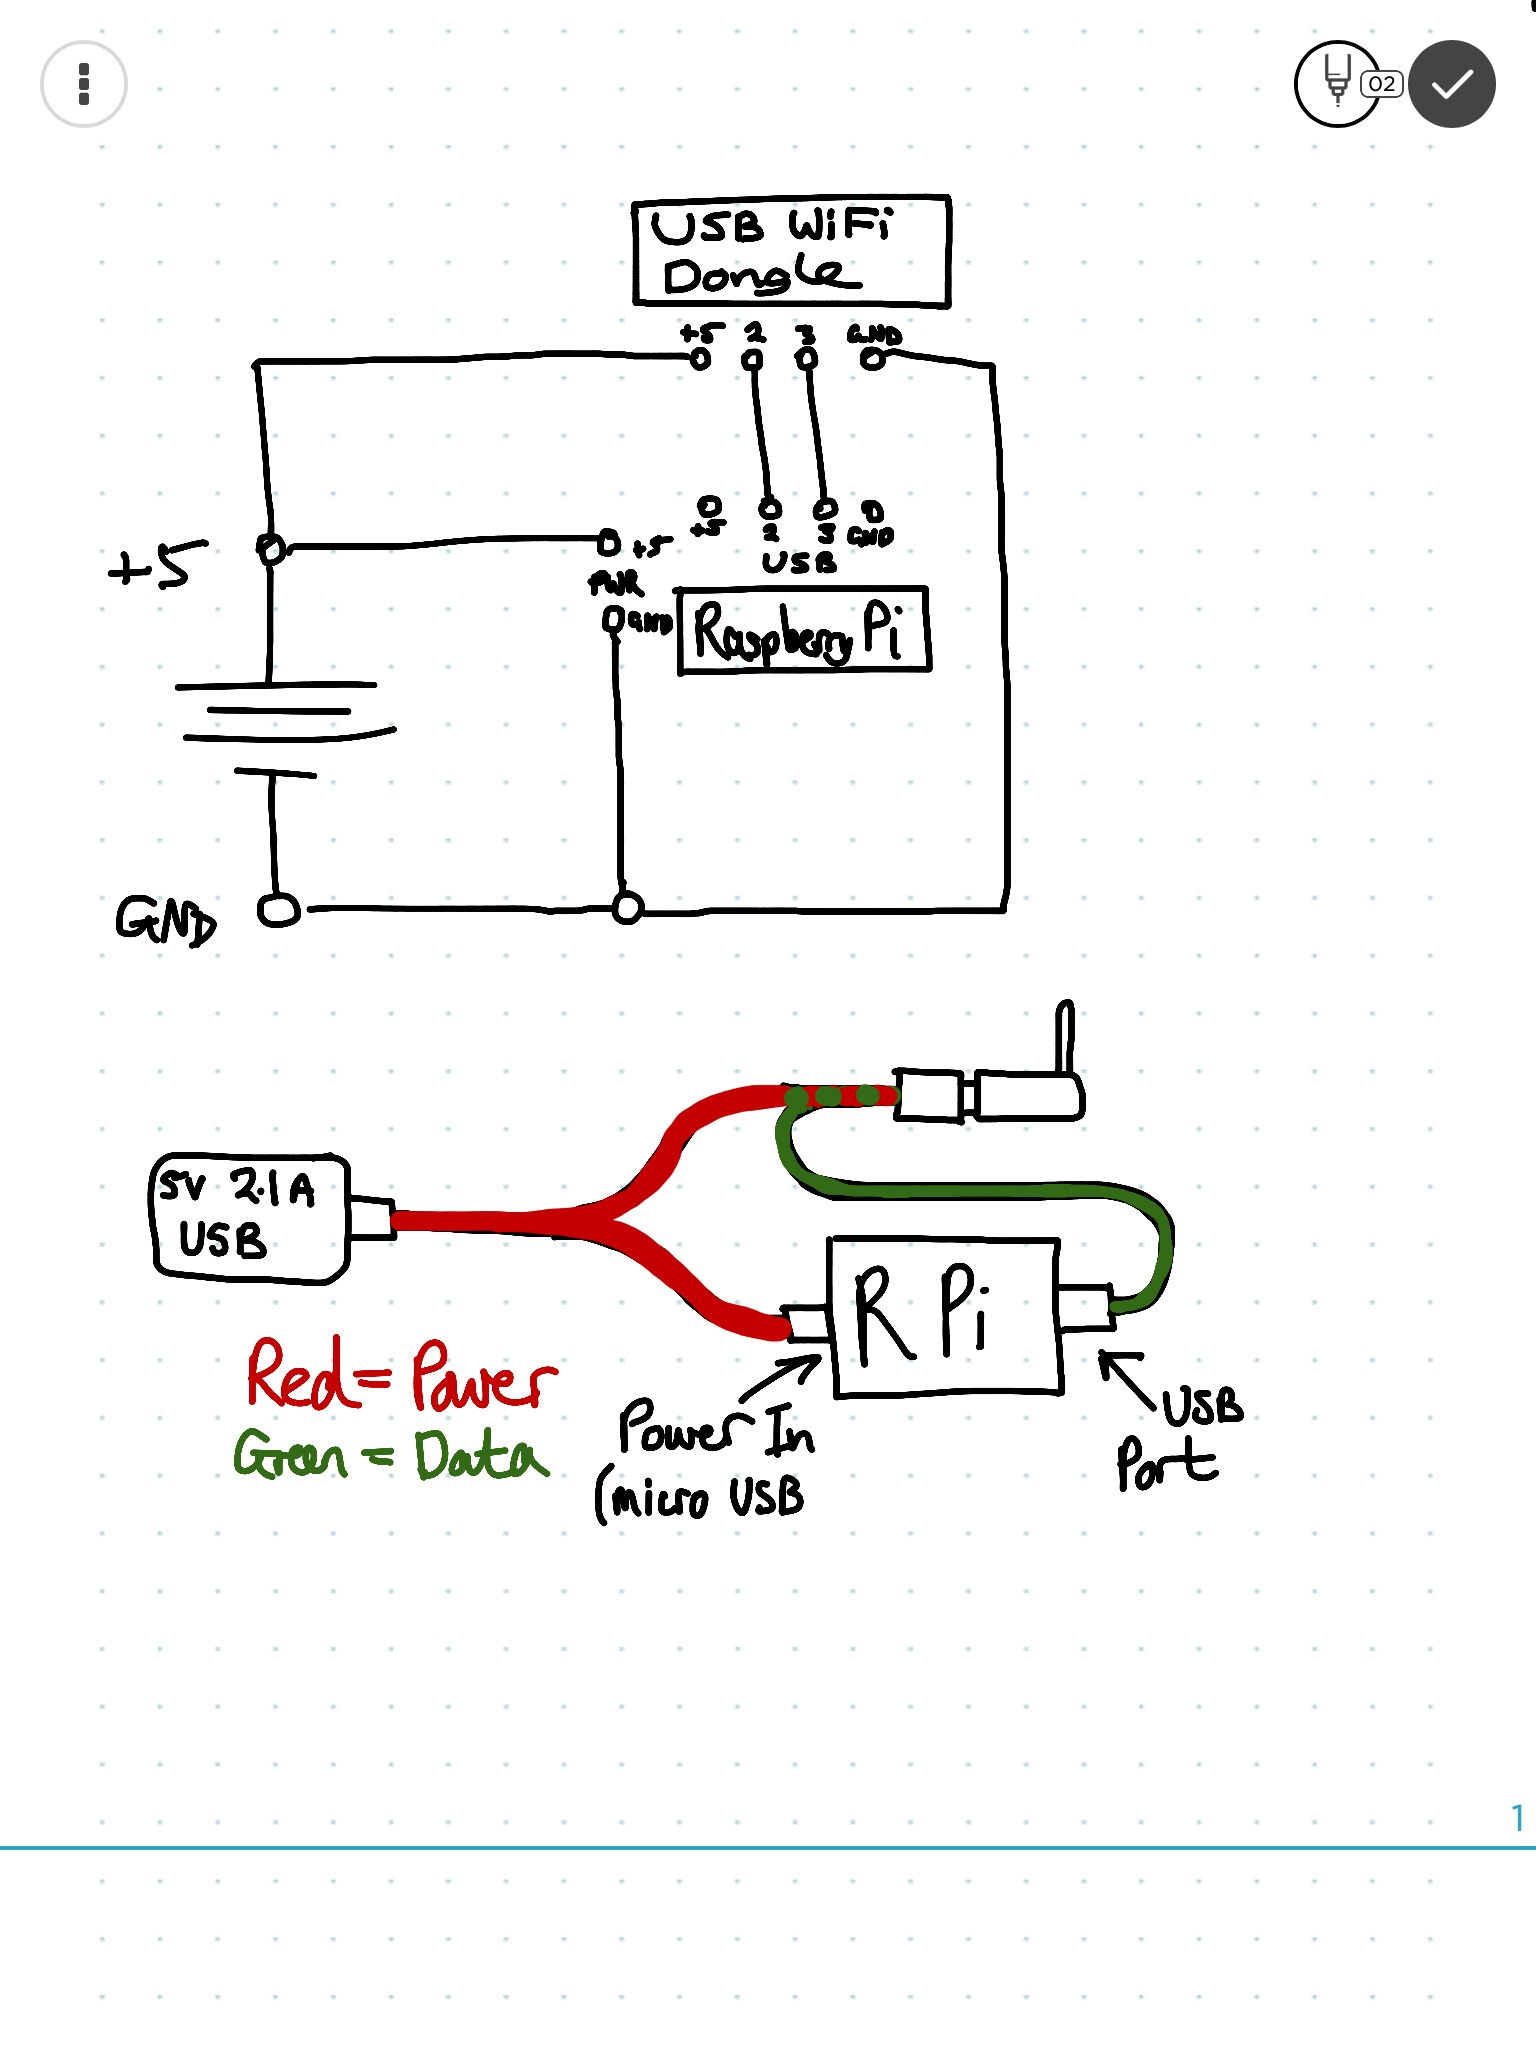 Wiring Diagram Usb Power Plug